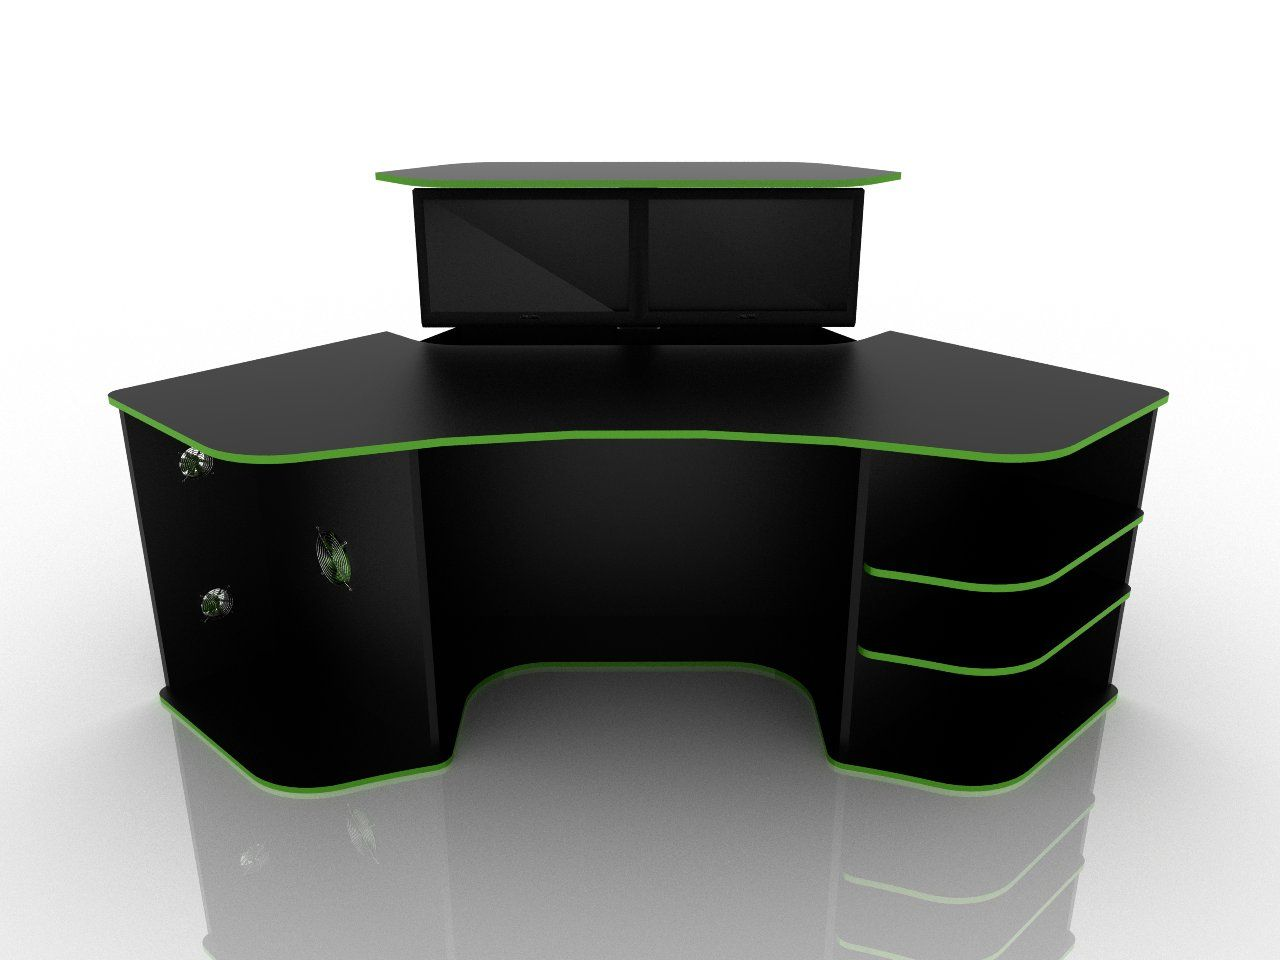 The 1st R2s Gaming Desk prototype is in production In the